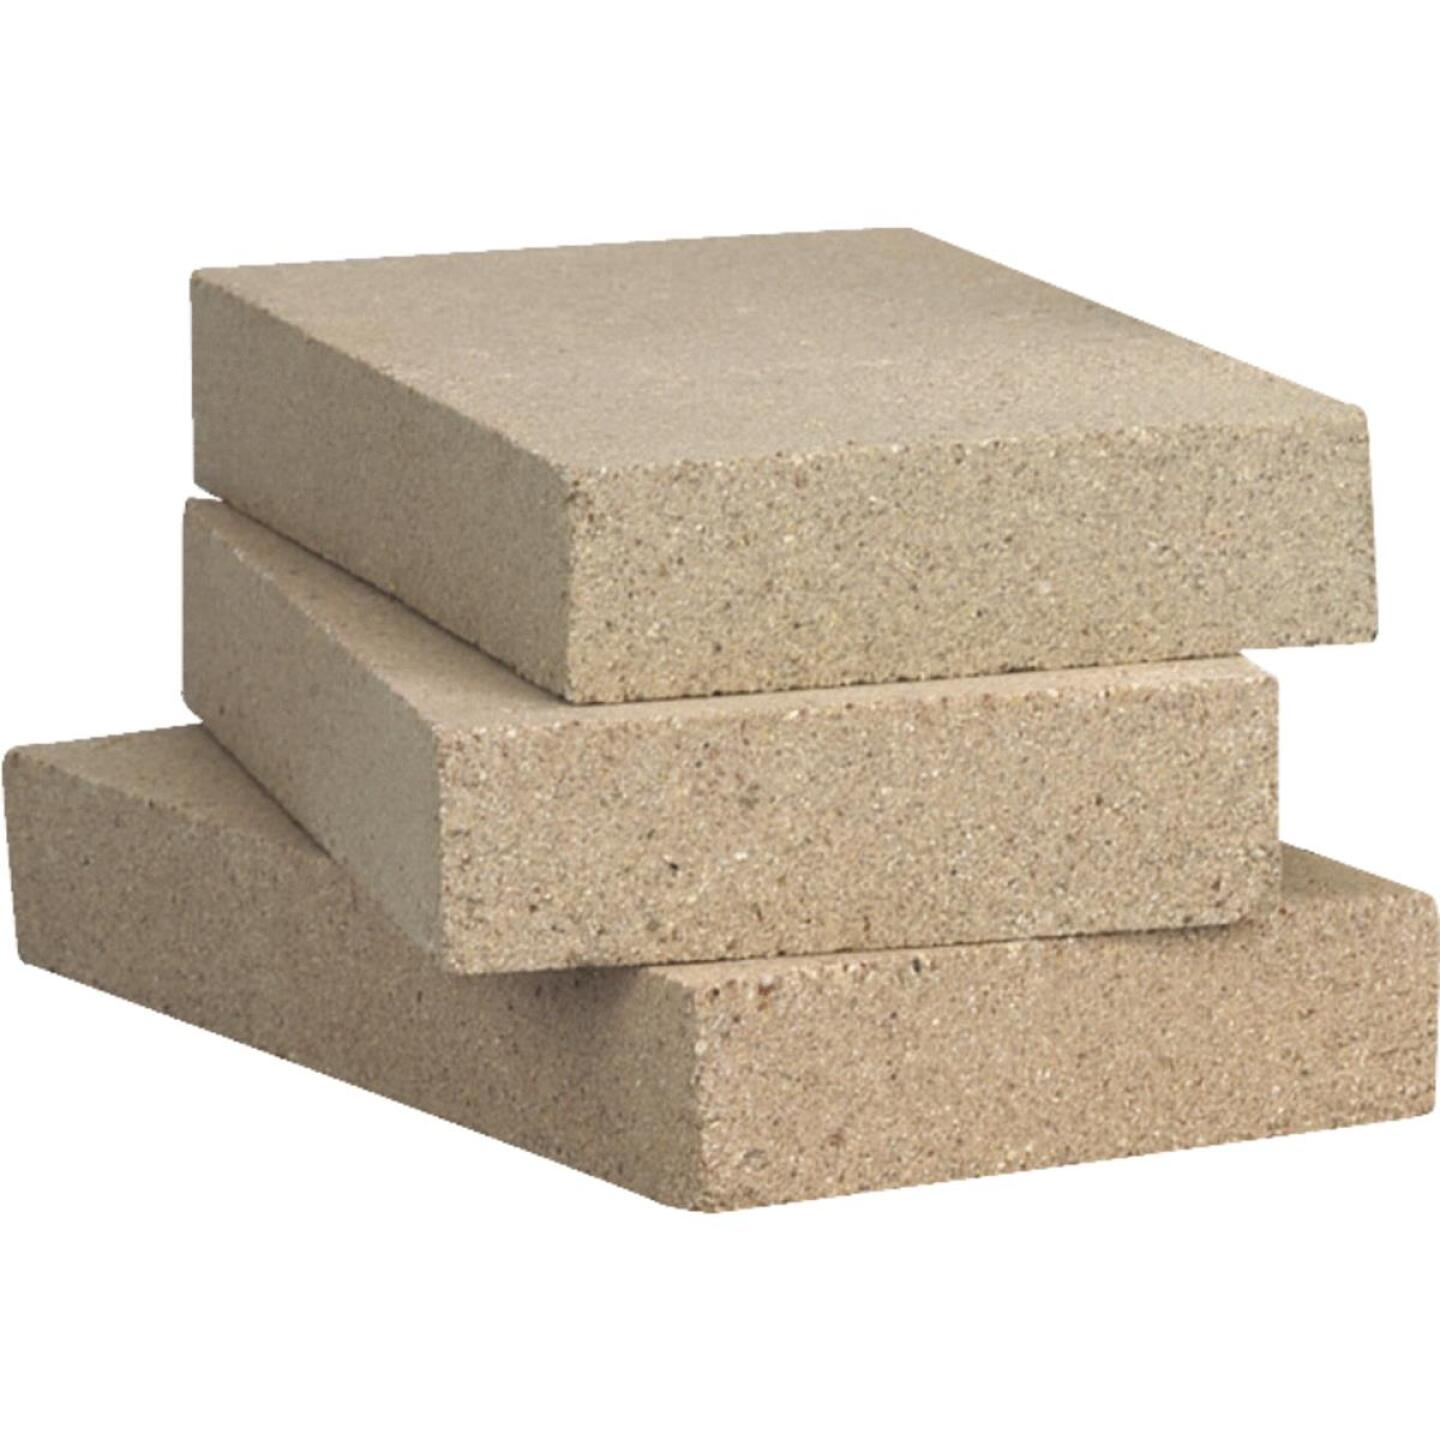 Meeco's Red Devil ASTM 9 In. 4-1/2 In. Fire Brick (6-Pack) Image 2